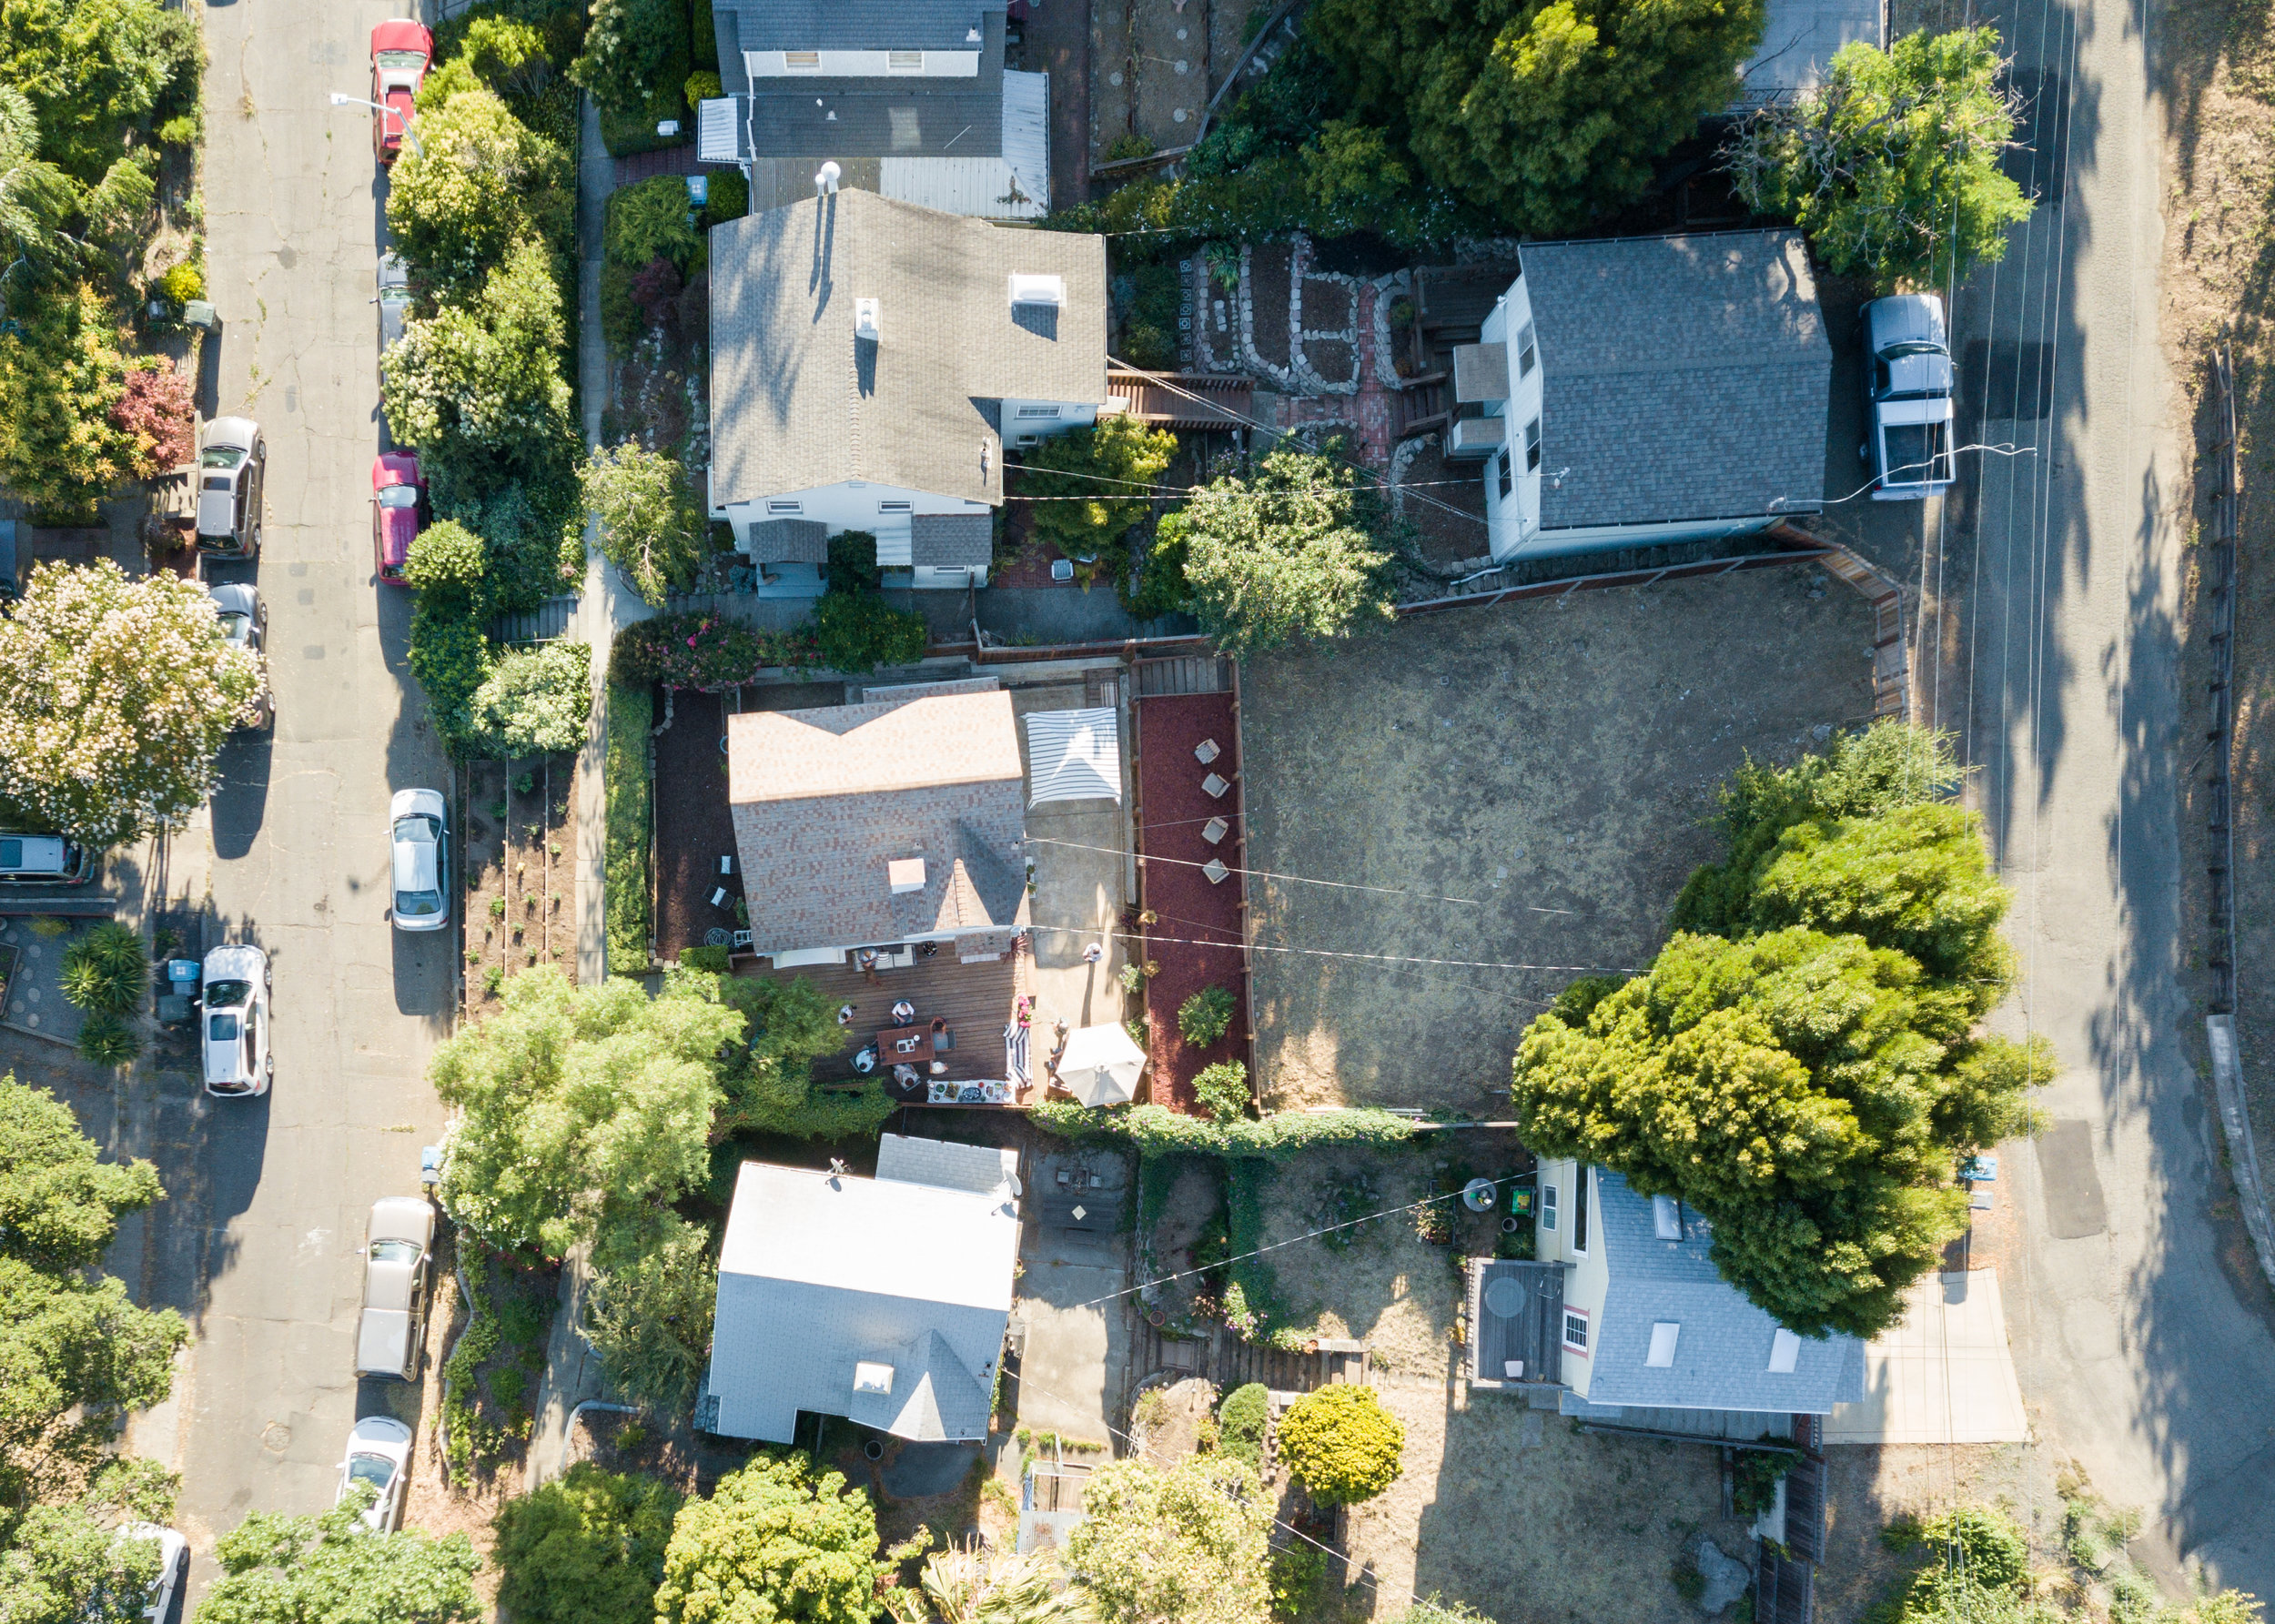 Aerial view showing Hillside Street running behind the property at the top of the lot.